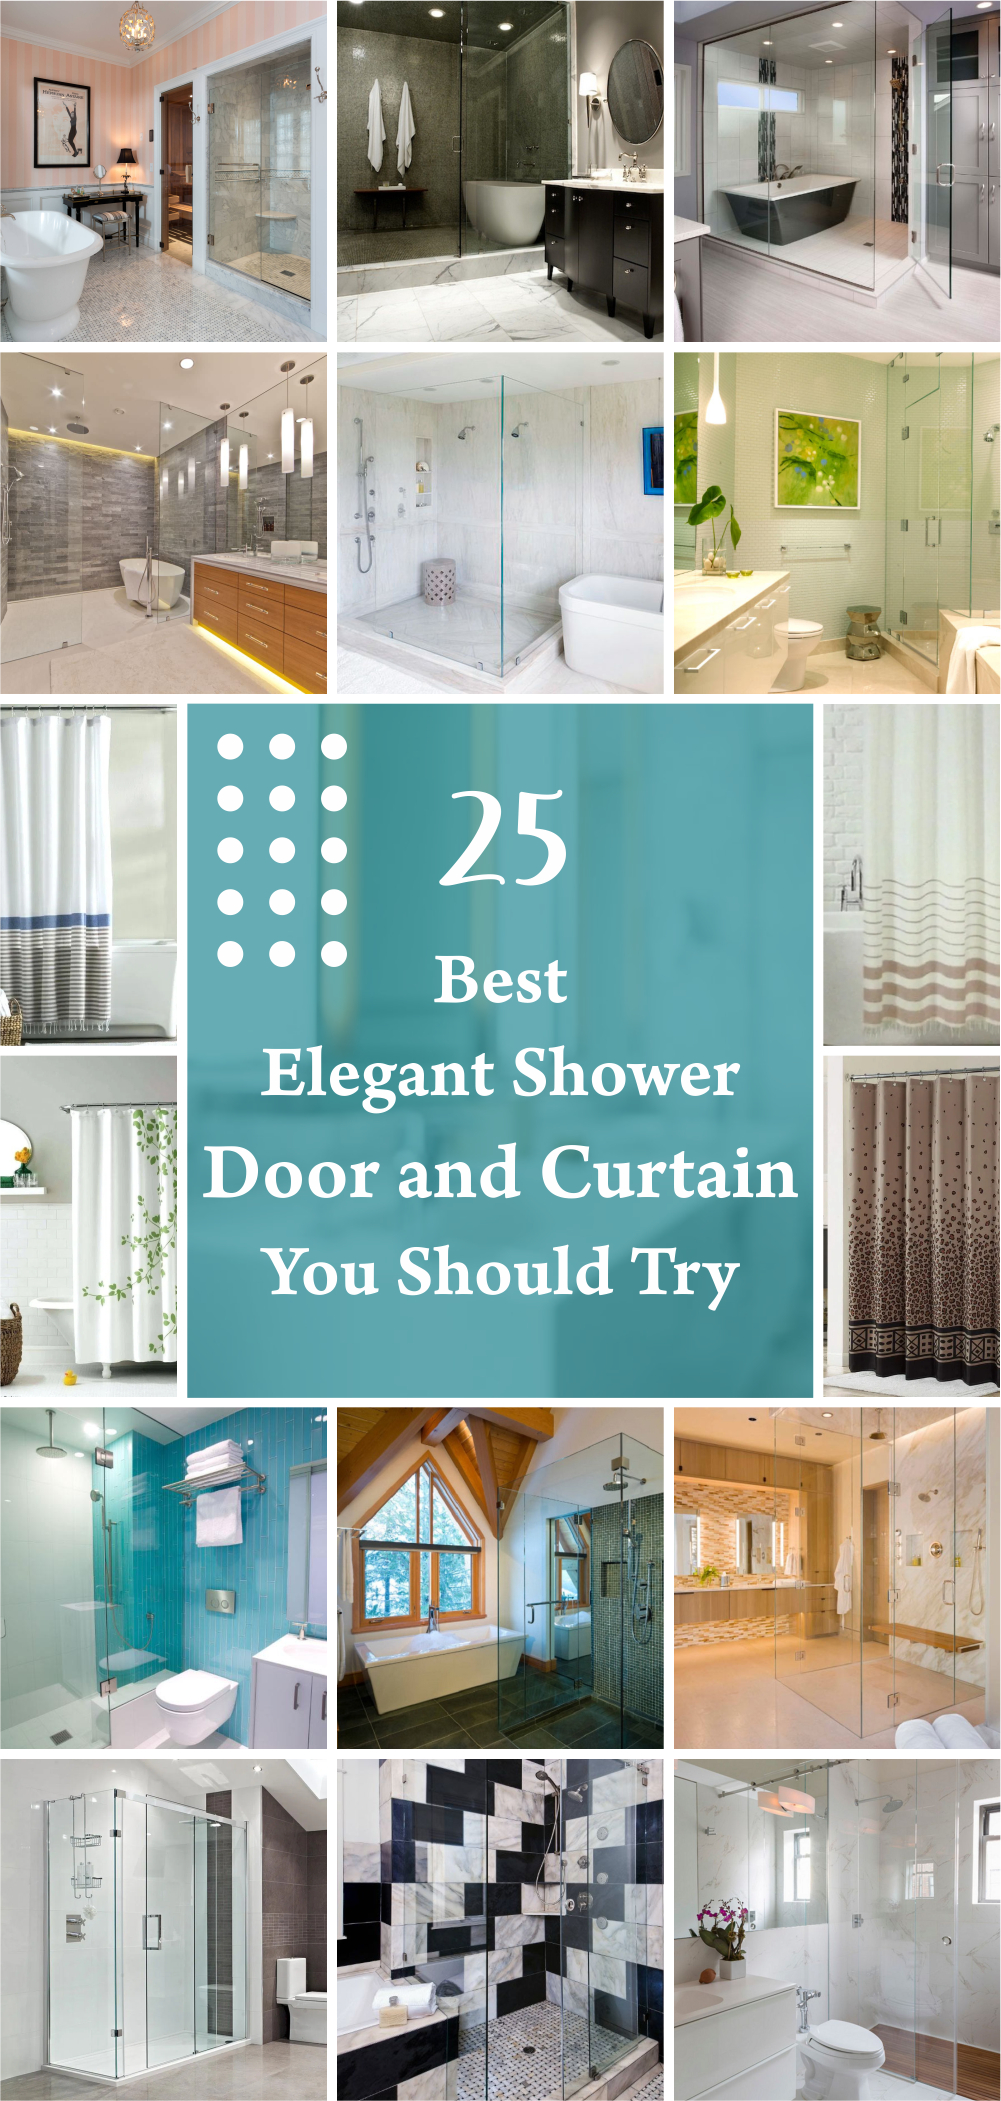 25 best elegant shower door and curtain you should try 1